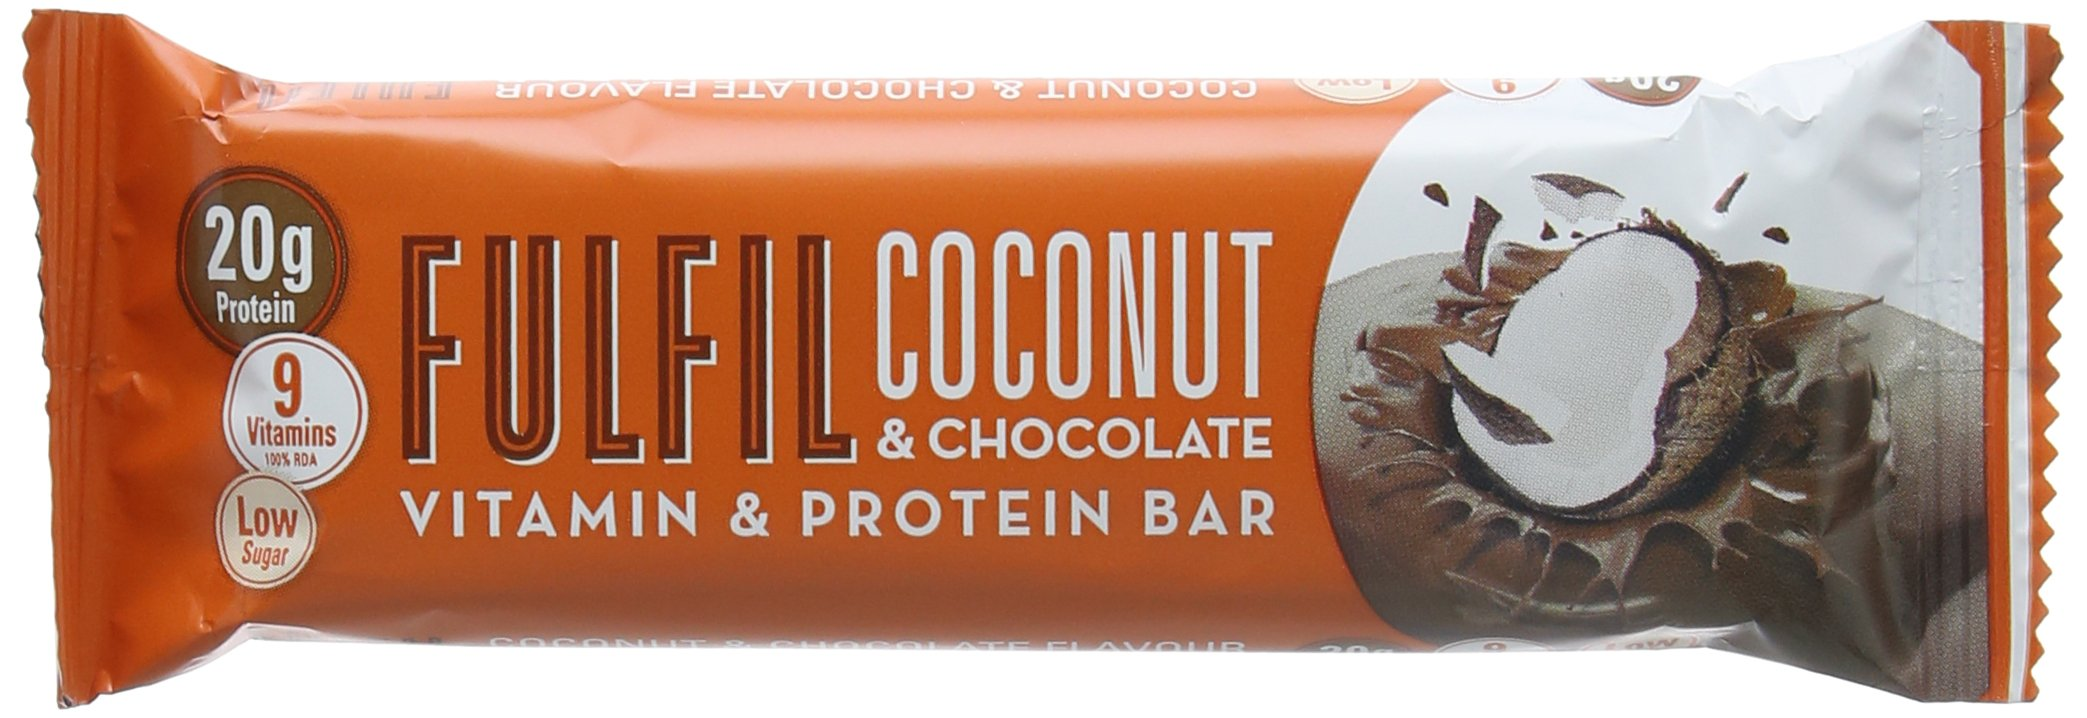 Fulfil Coconut and Chocolate Vitamin and Protein Bar - Pack of 15 product image